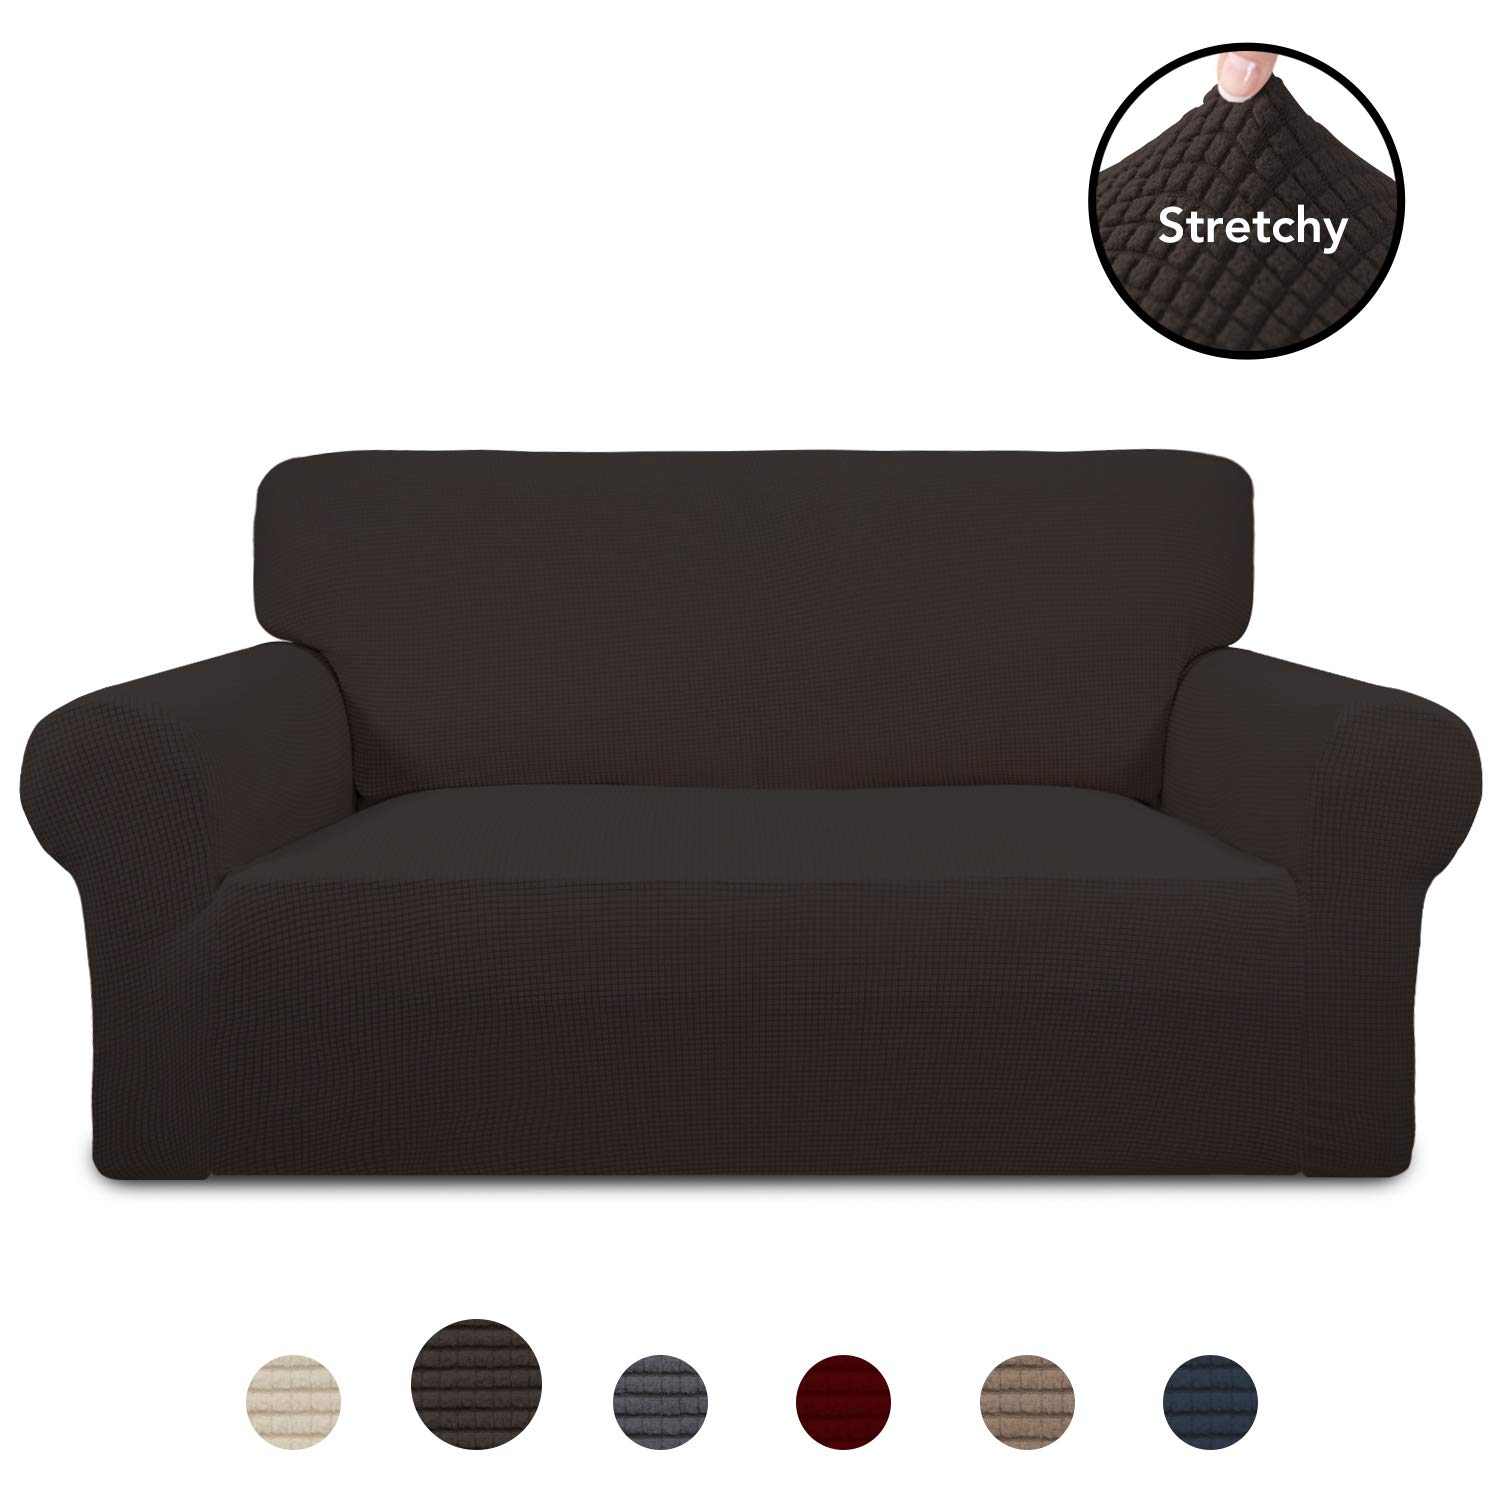 PureFit Stretch Loveseat Sofa Slipcover - Spandex Jacquard Anti-Slip Soft Couch Sofa Cover, Washable Furniture Protector with Anti-Skid Foam and Elastic Bottom for Kids (Loveseat, Chocolate) by PureFit